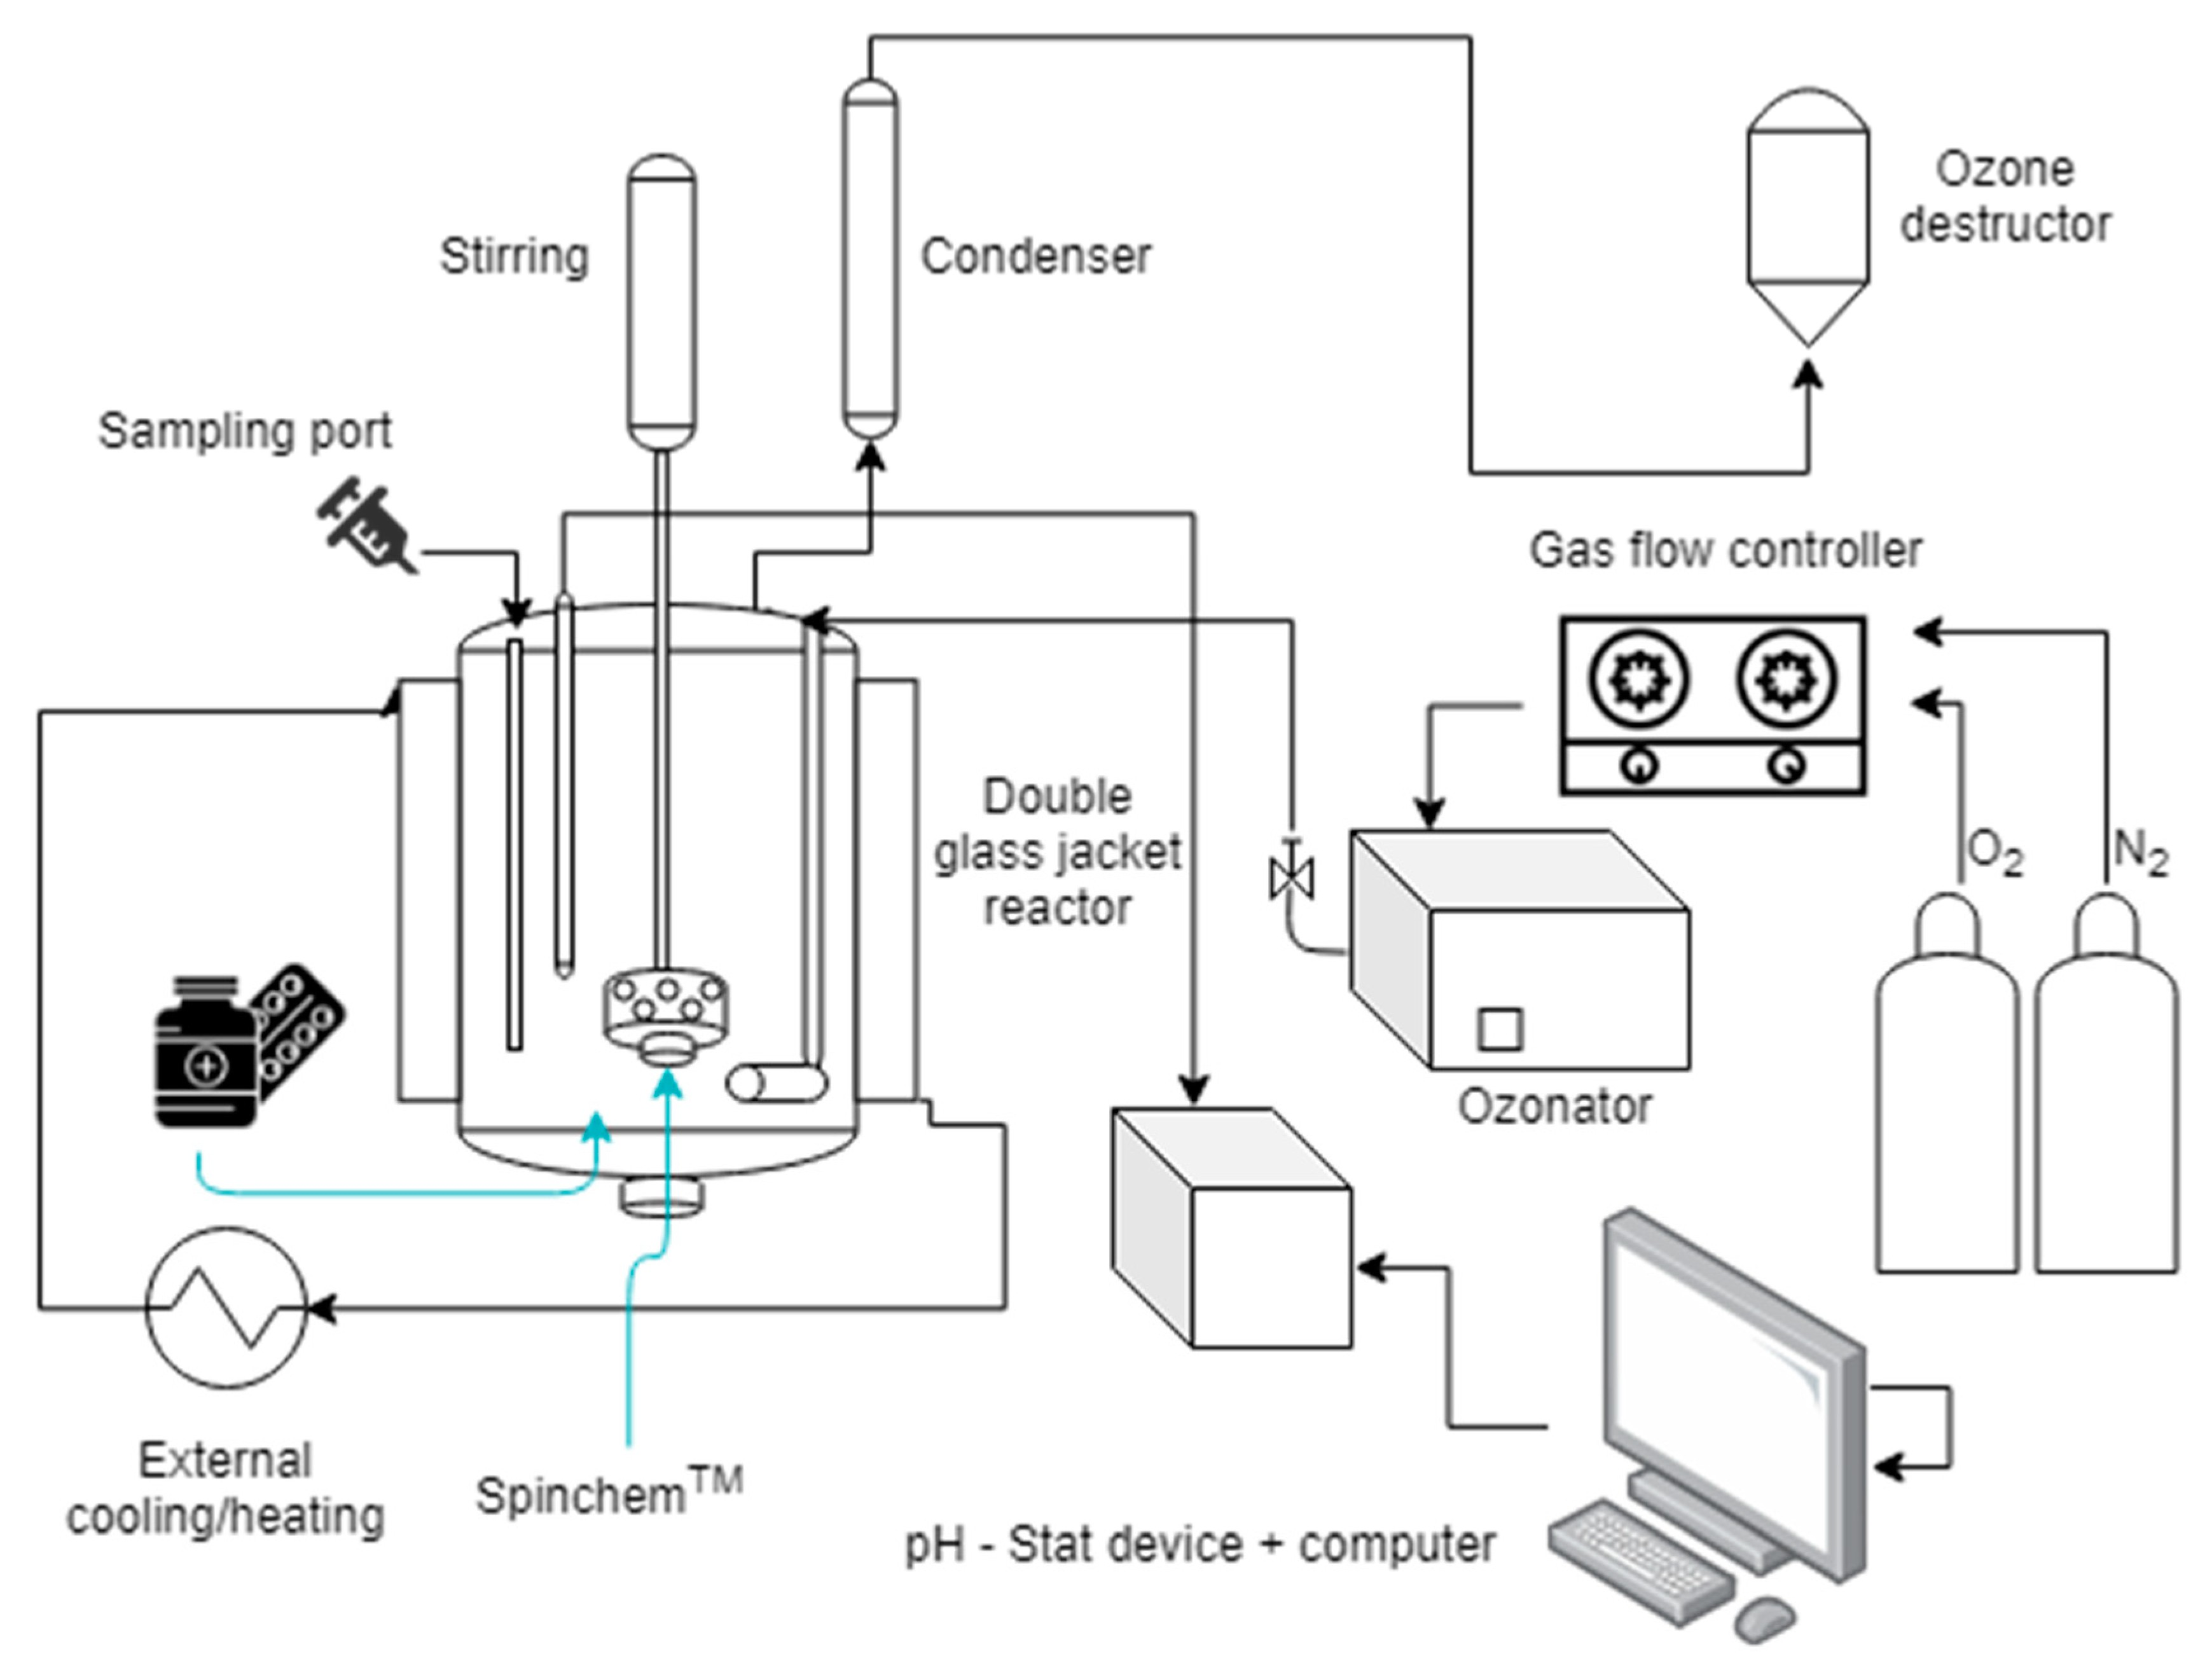 Hydro Vac Schematic Catalysts Free Full Text Of Hydro Vac Schematic